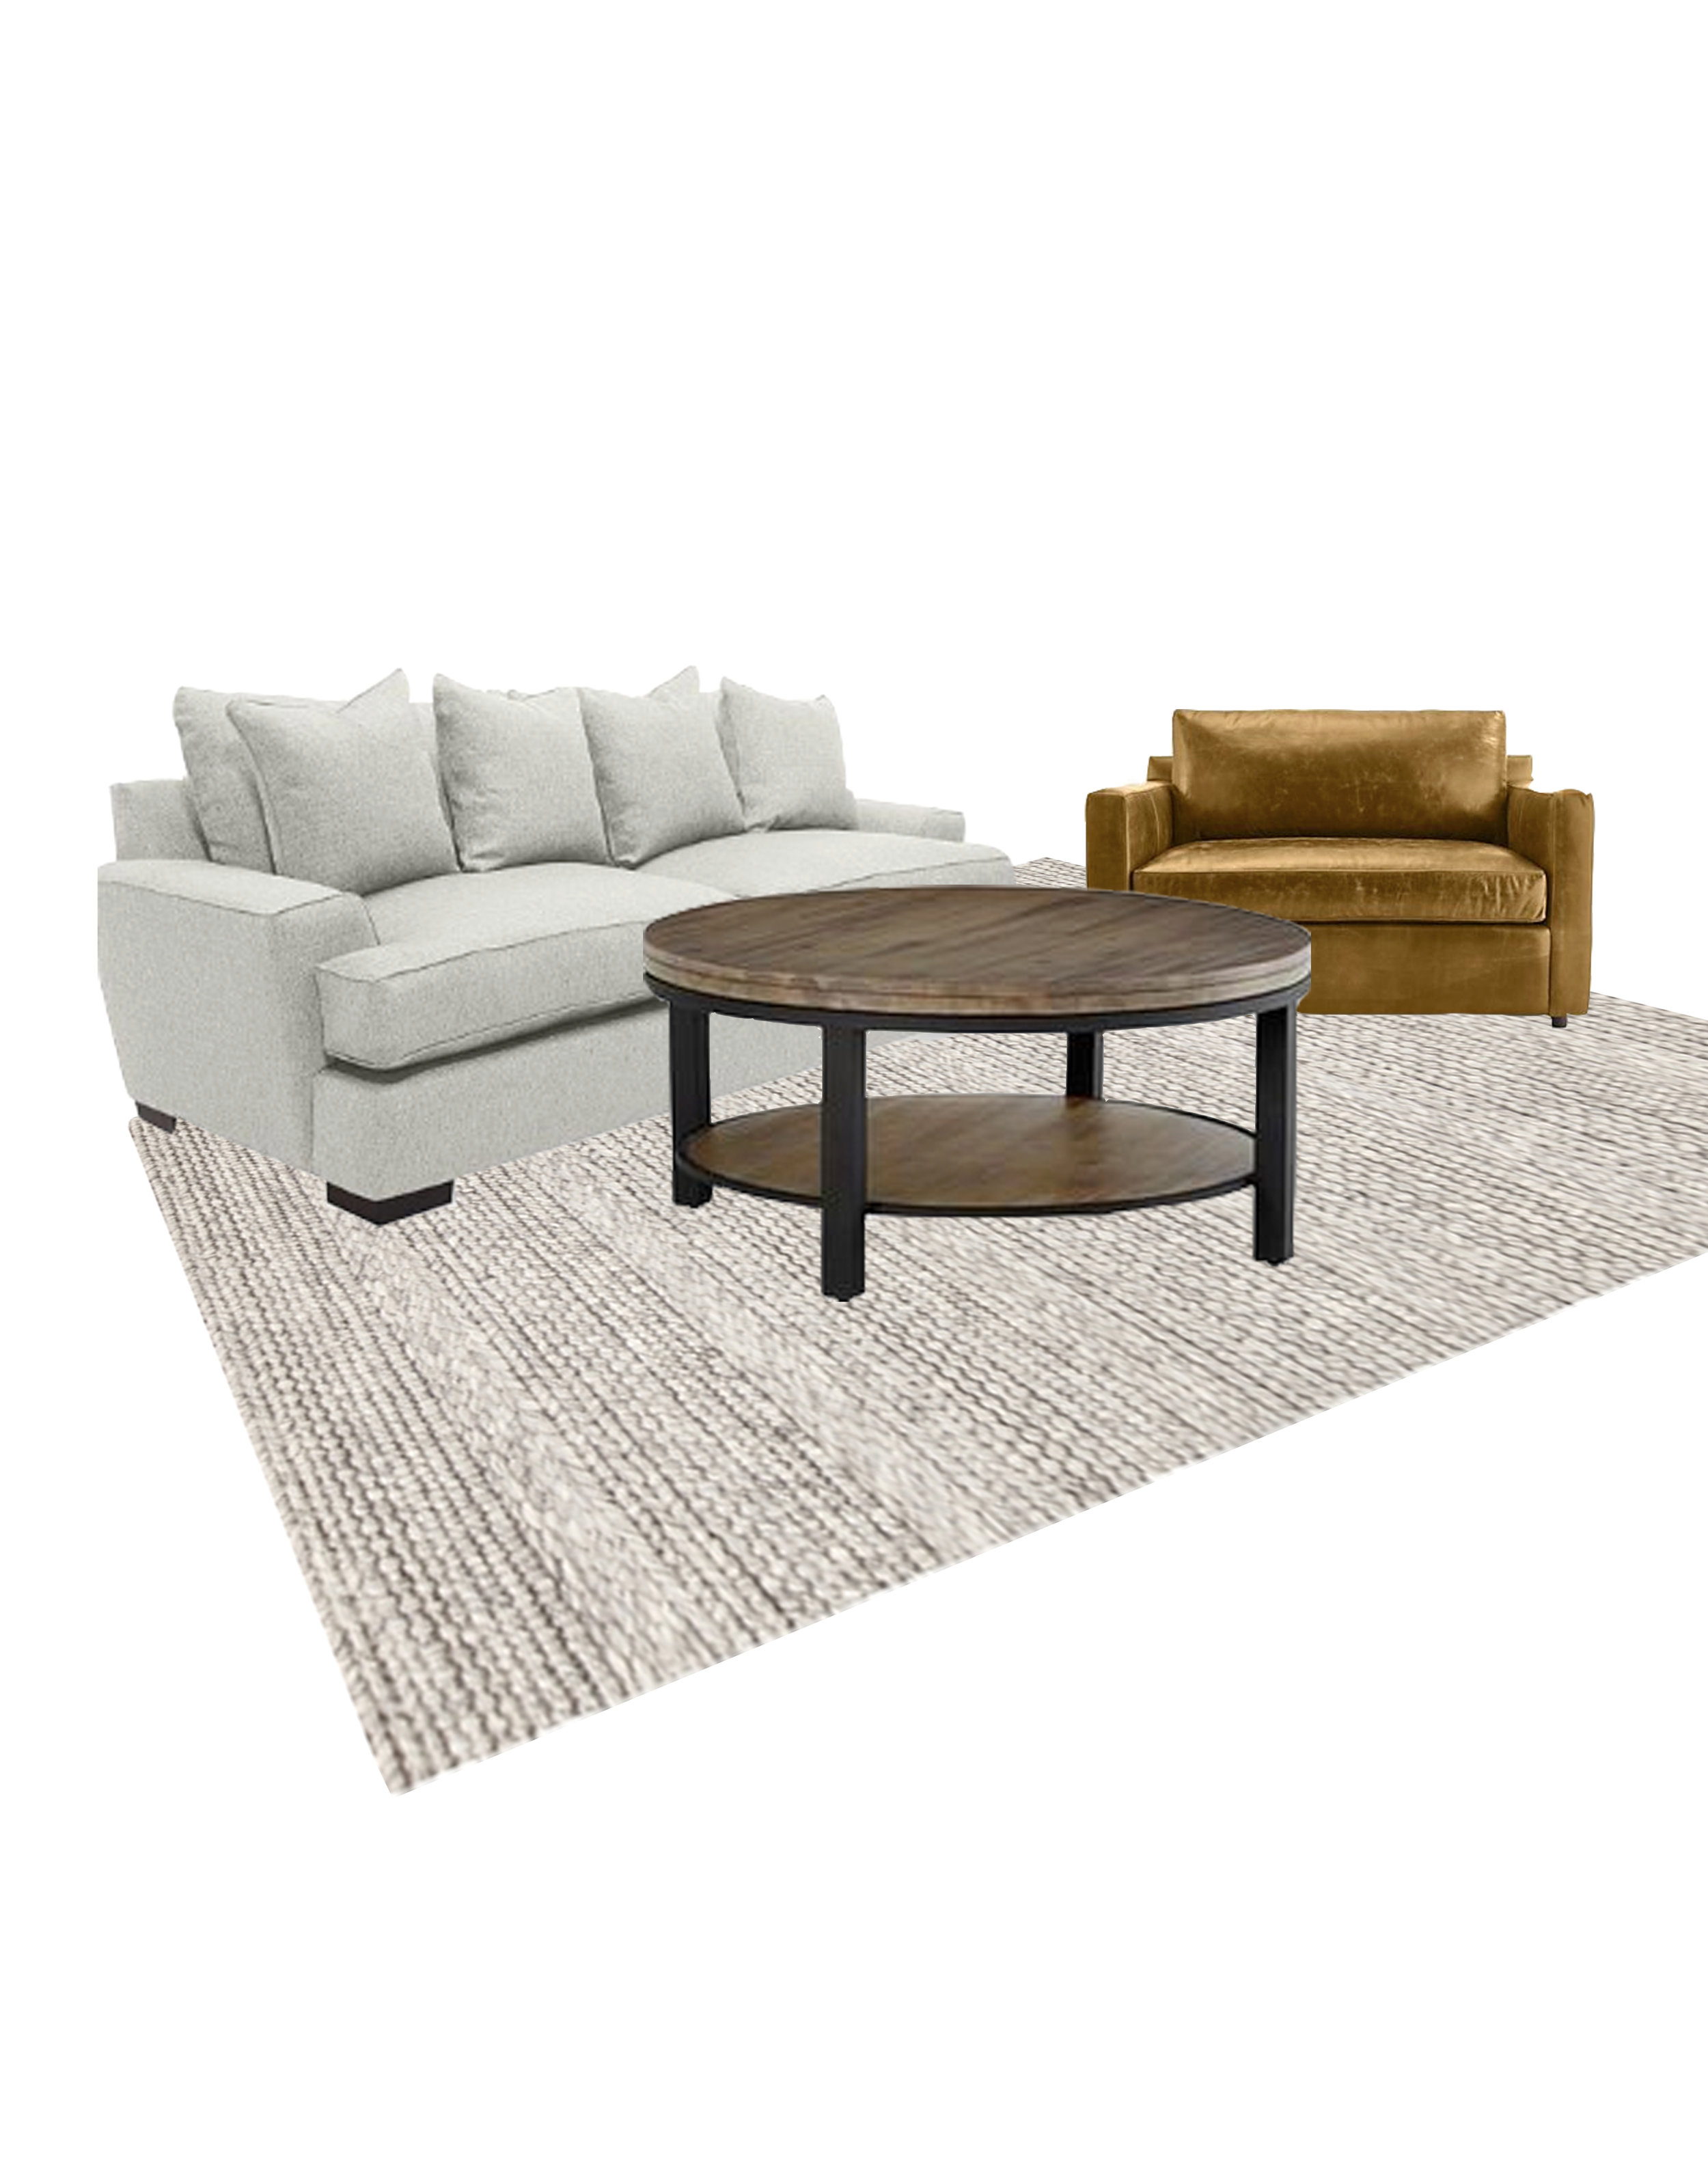 Couch, chair, coffee table and rug.